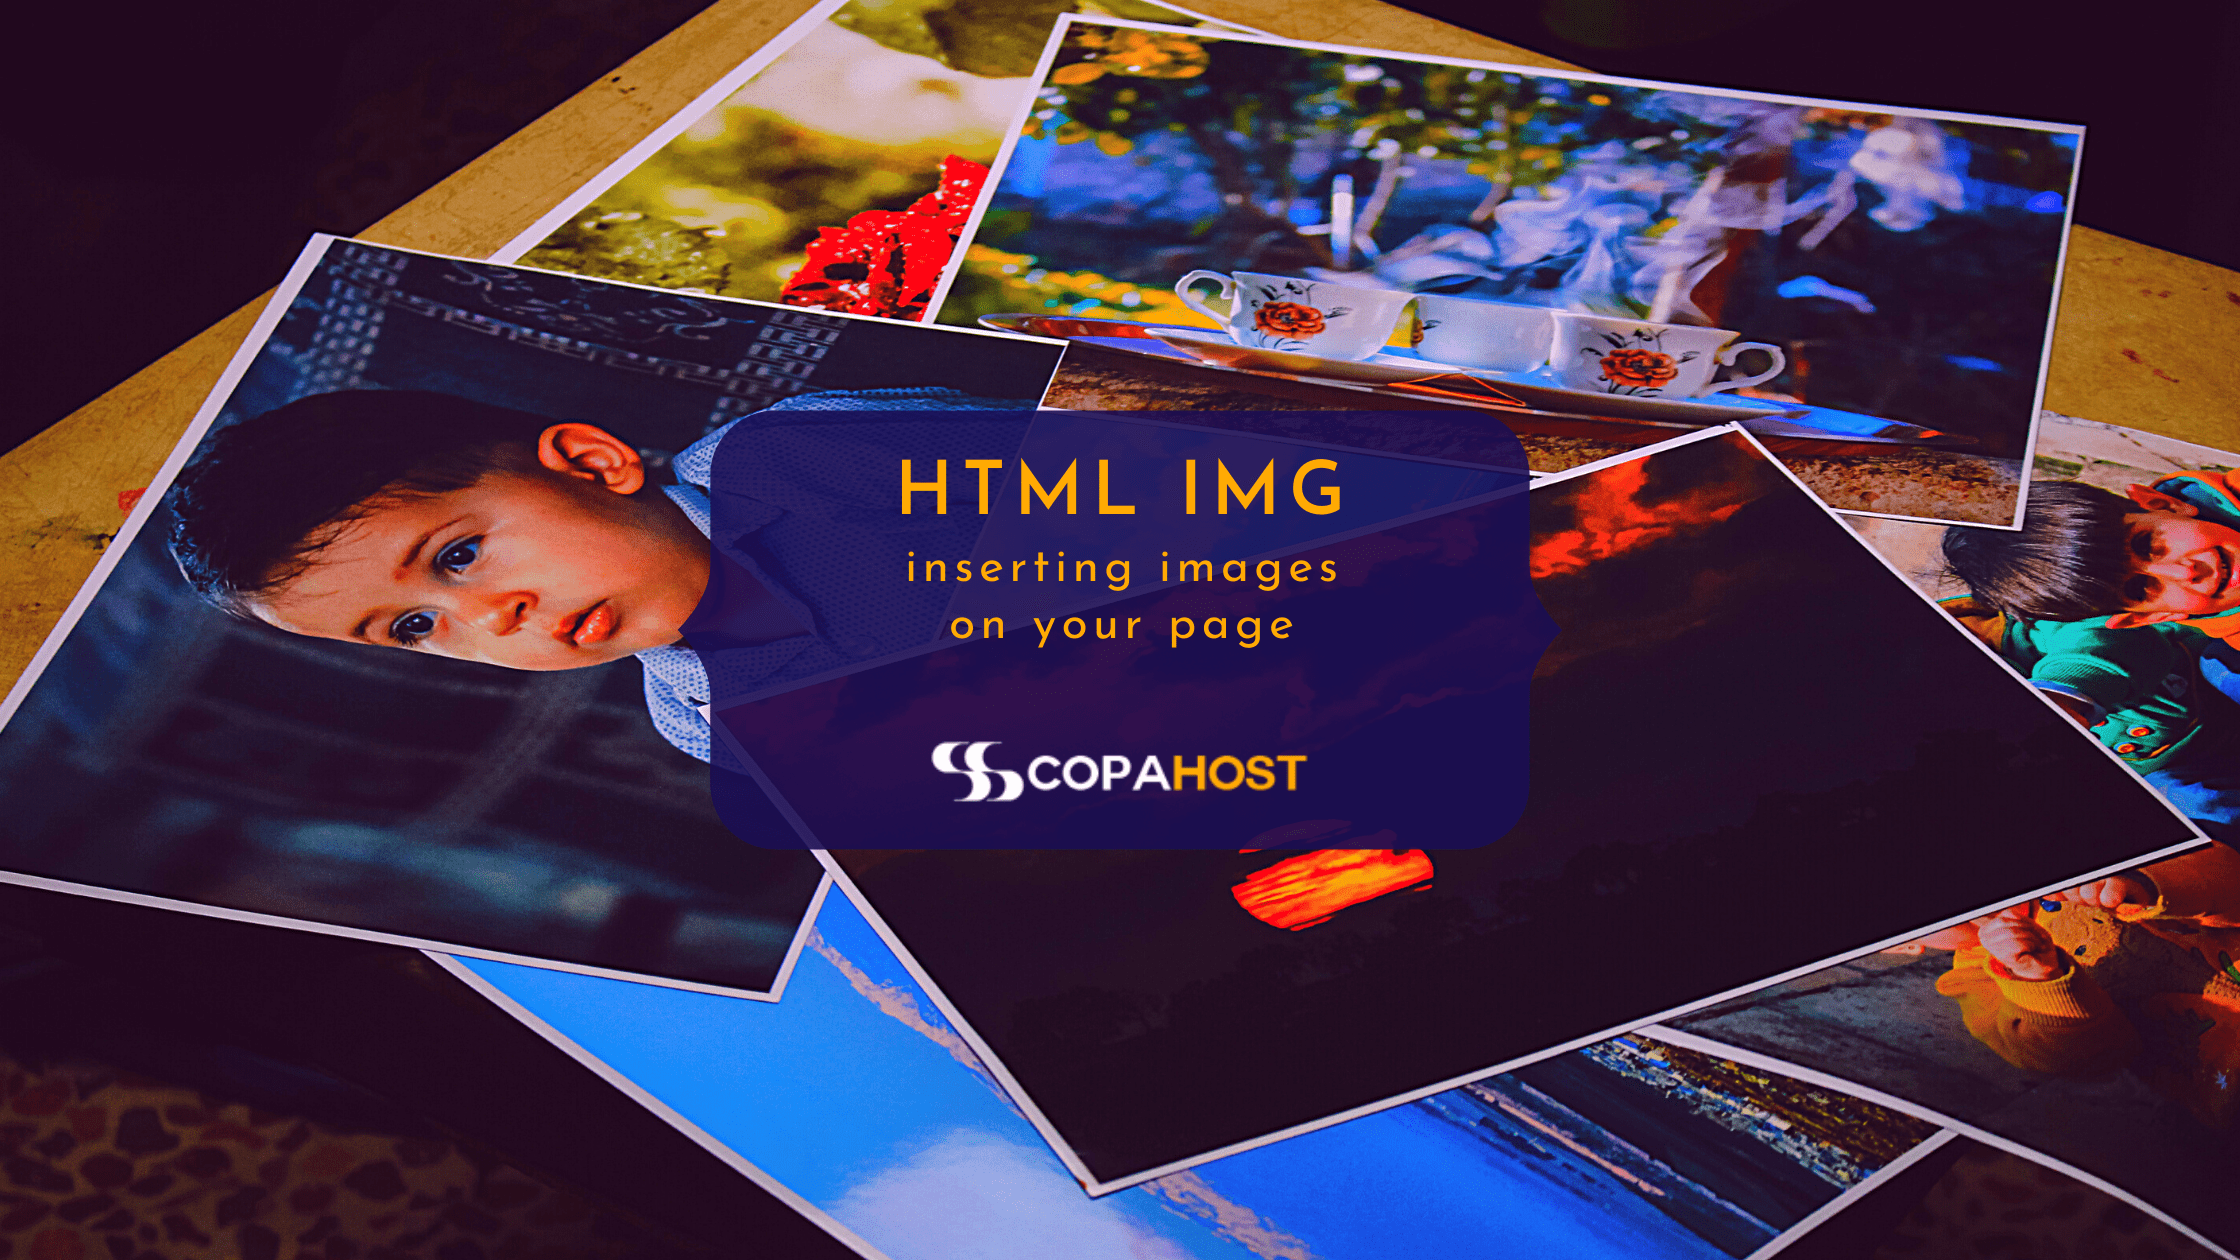 HTML IMG: inserting images on your page